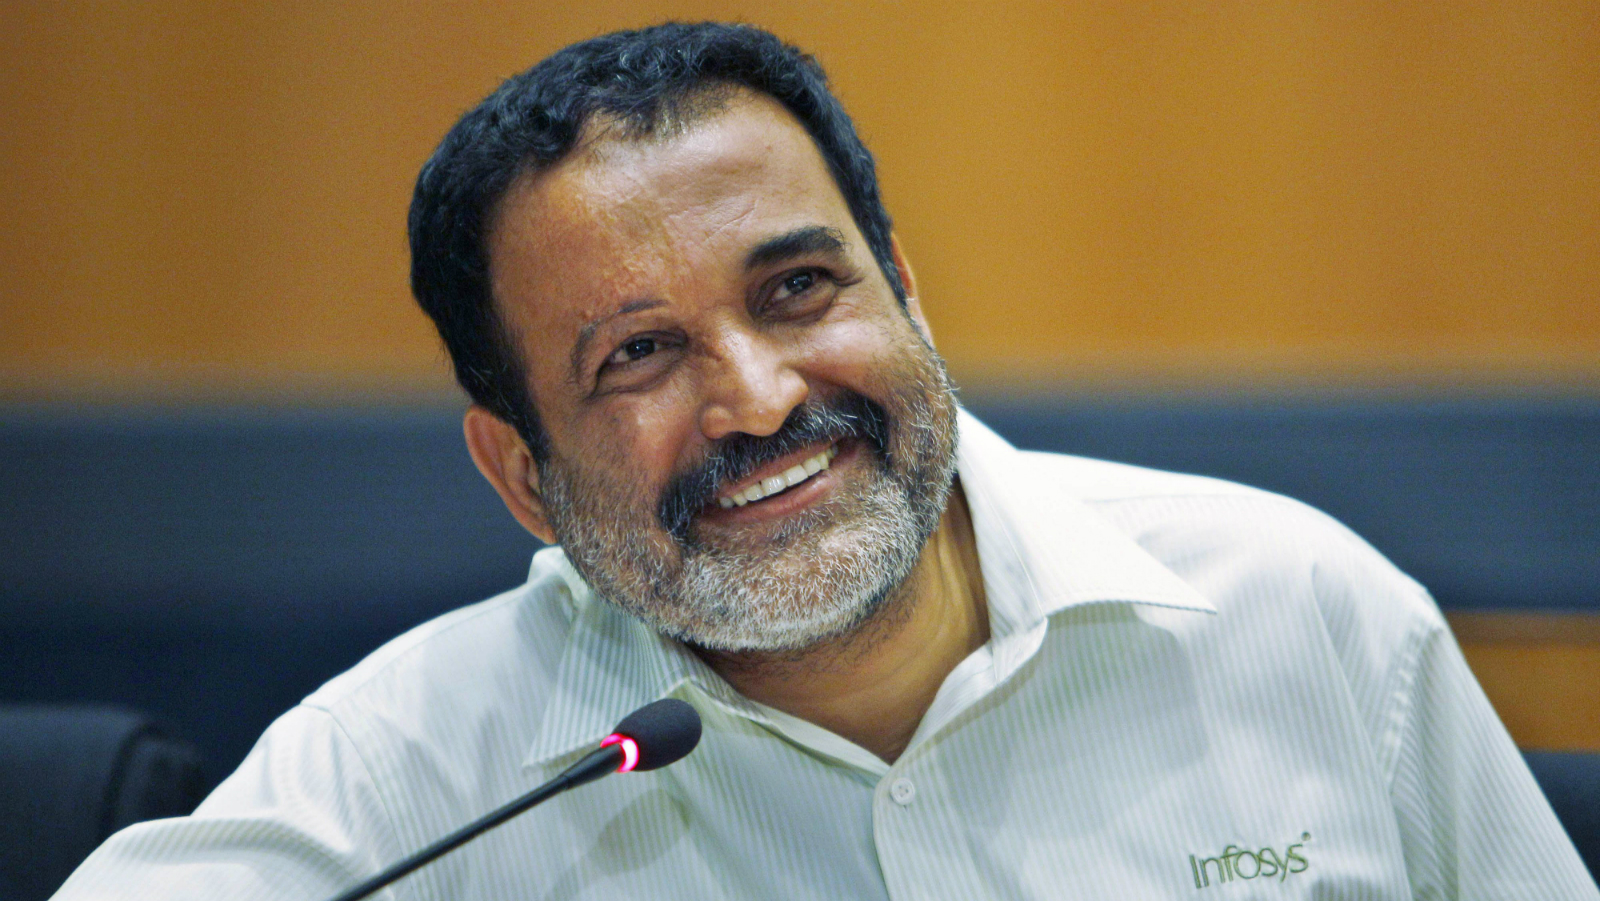 Infosys Technologies board member T.V. Mohandas Pai speaks after announcing his decision to retire, at their headquarters in Bangalore, India, Friday, April 15, 2011. Infosys Technologies reported an 18.9 percent rise in quarterly profit in dollar terms Friday.